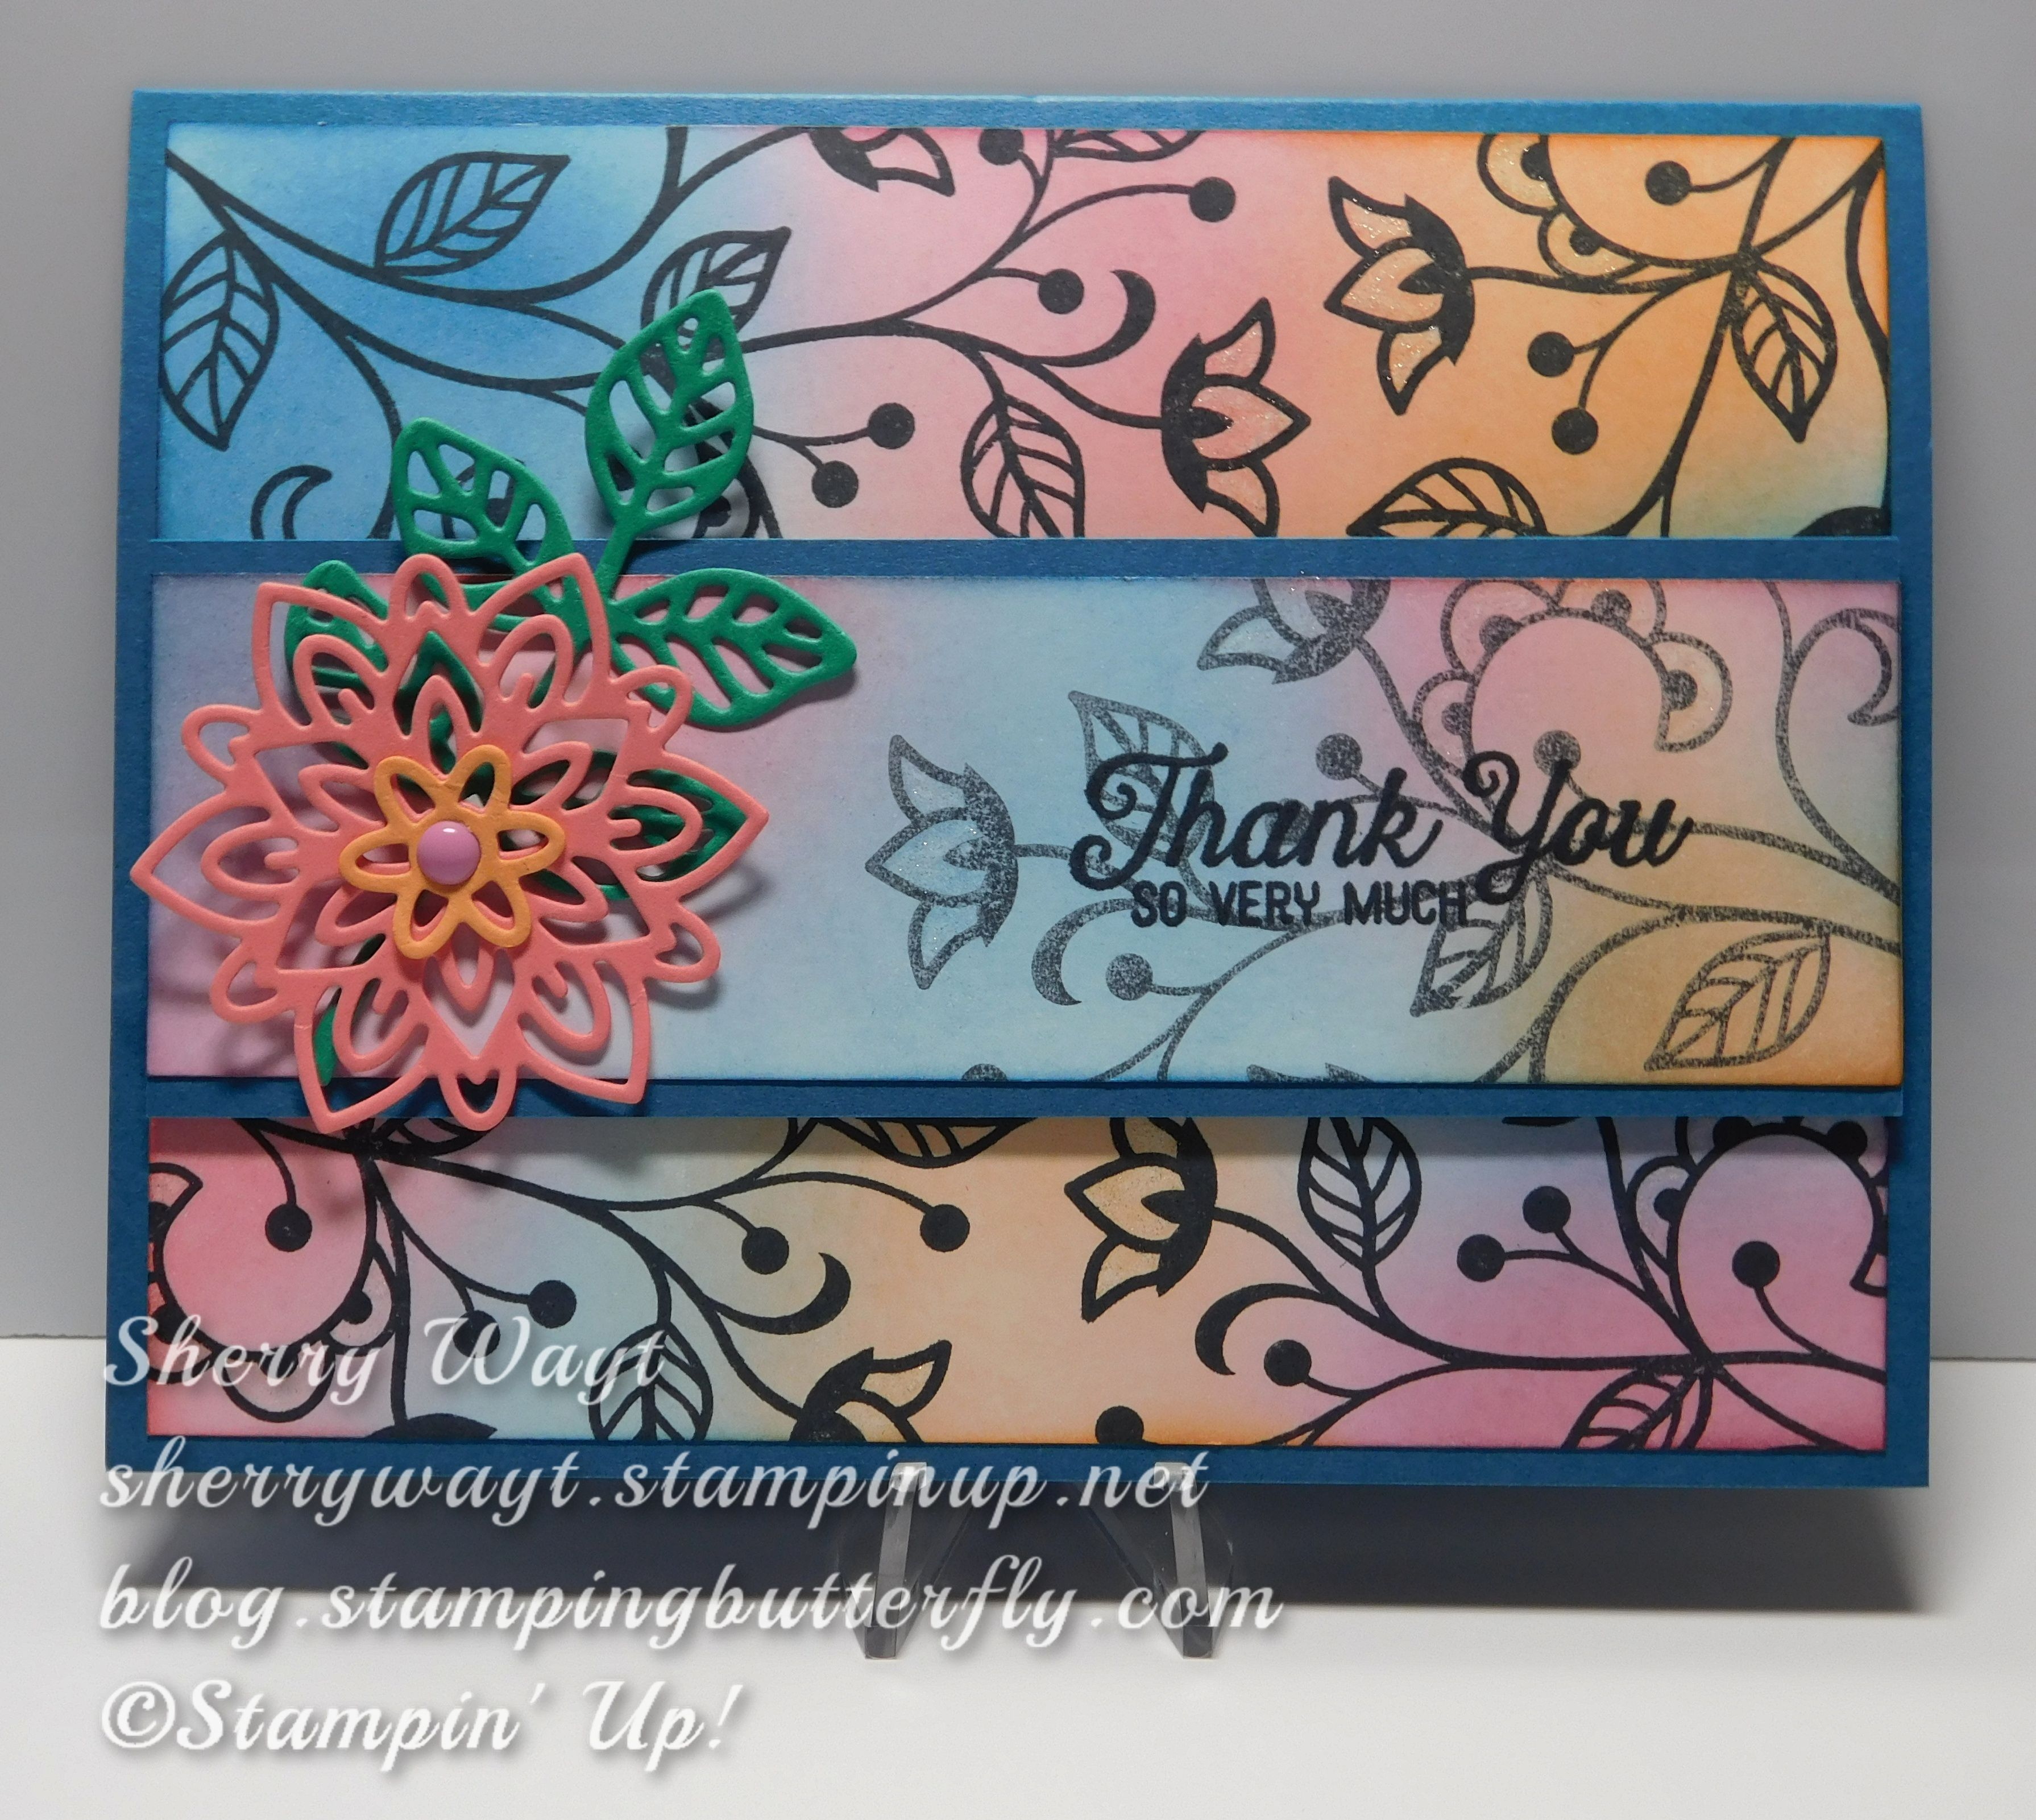 Flourishing phrases stampin up see the video for how to make it flourishing phrases stampin up see the video for how to make it here https kristyandbryce Gallery